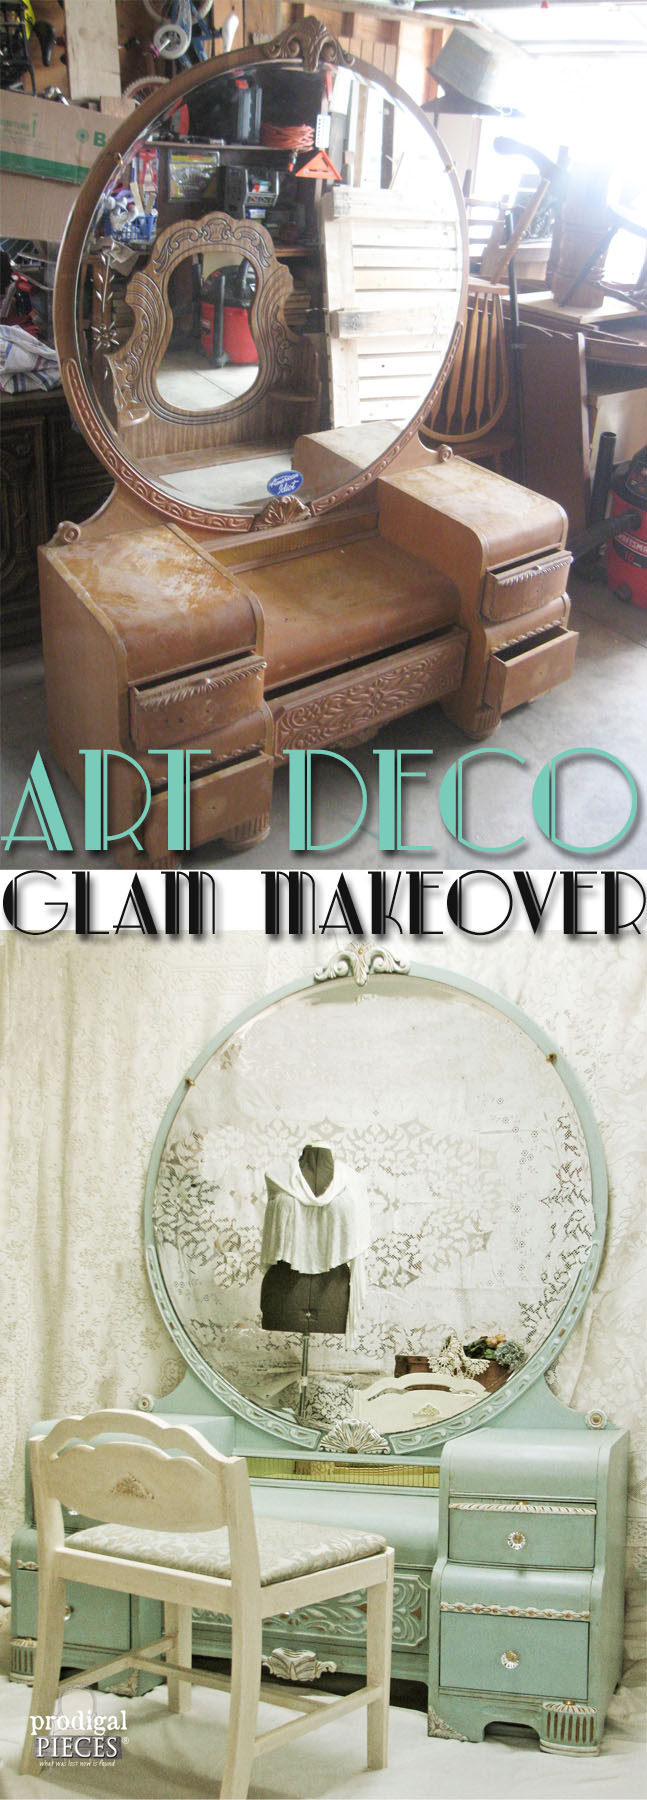 Art Deco Glam Makeover by Prodigal Pieces | www.prodigalpieces.com